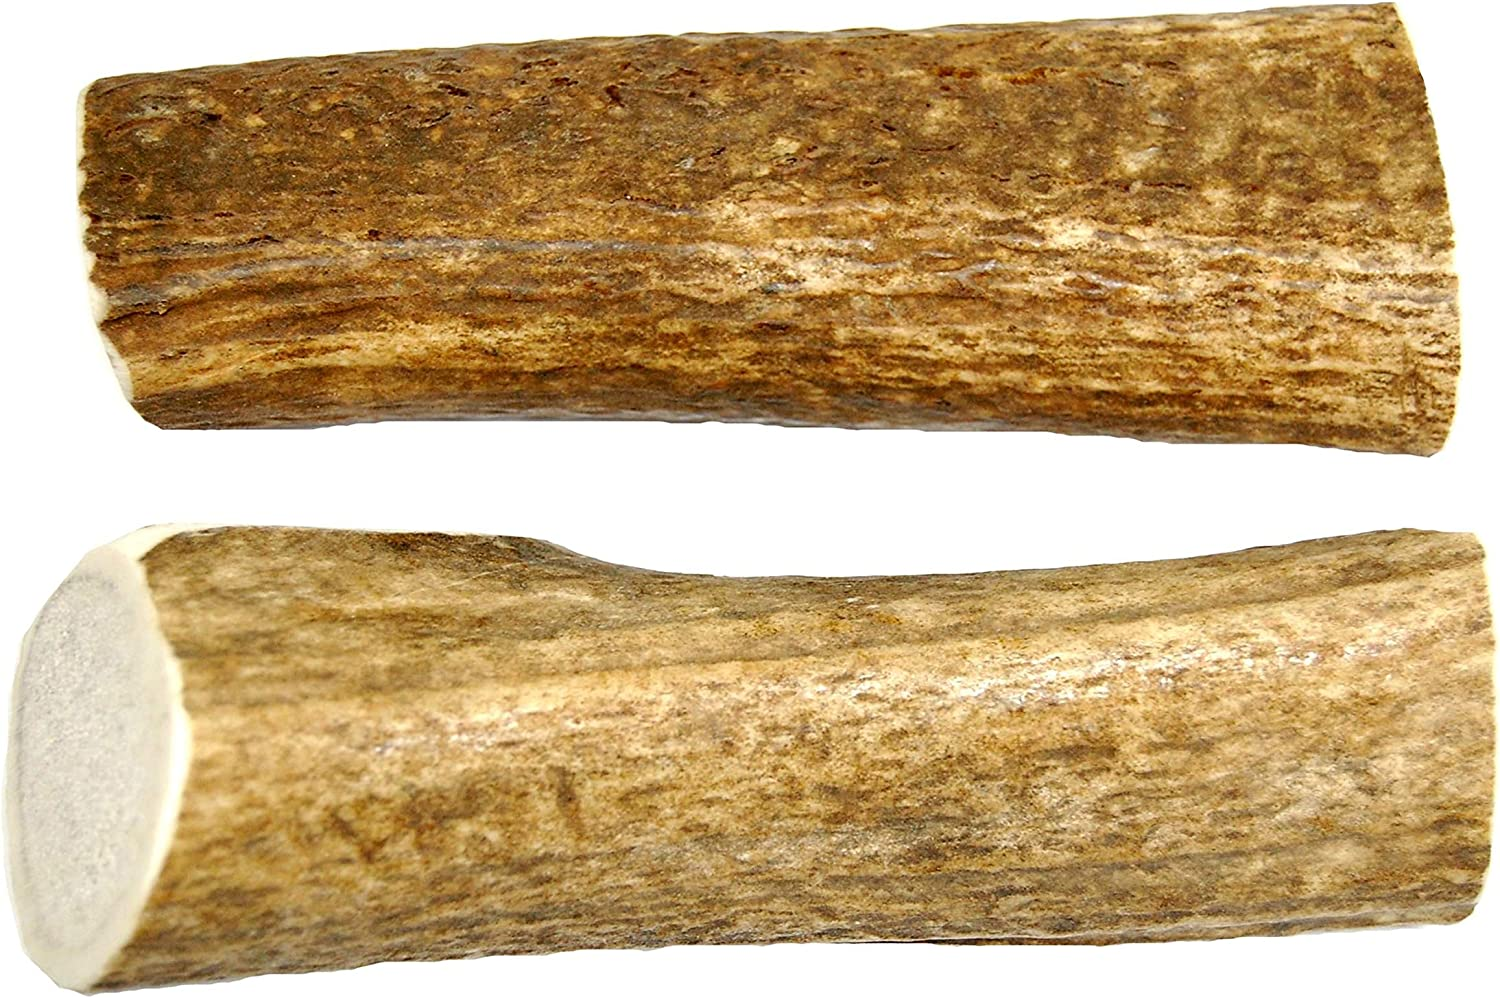 Big Dog Antler Chews Extra Large 2-Pack Elk Antler Dog Chews, 6 Inches to 10 inches Long, for Medium to Large Dogs and Puppies Brand